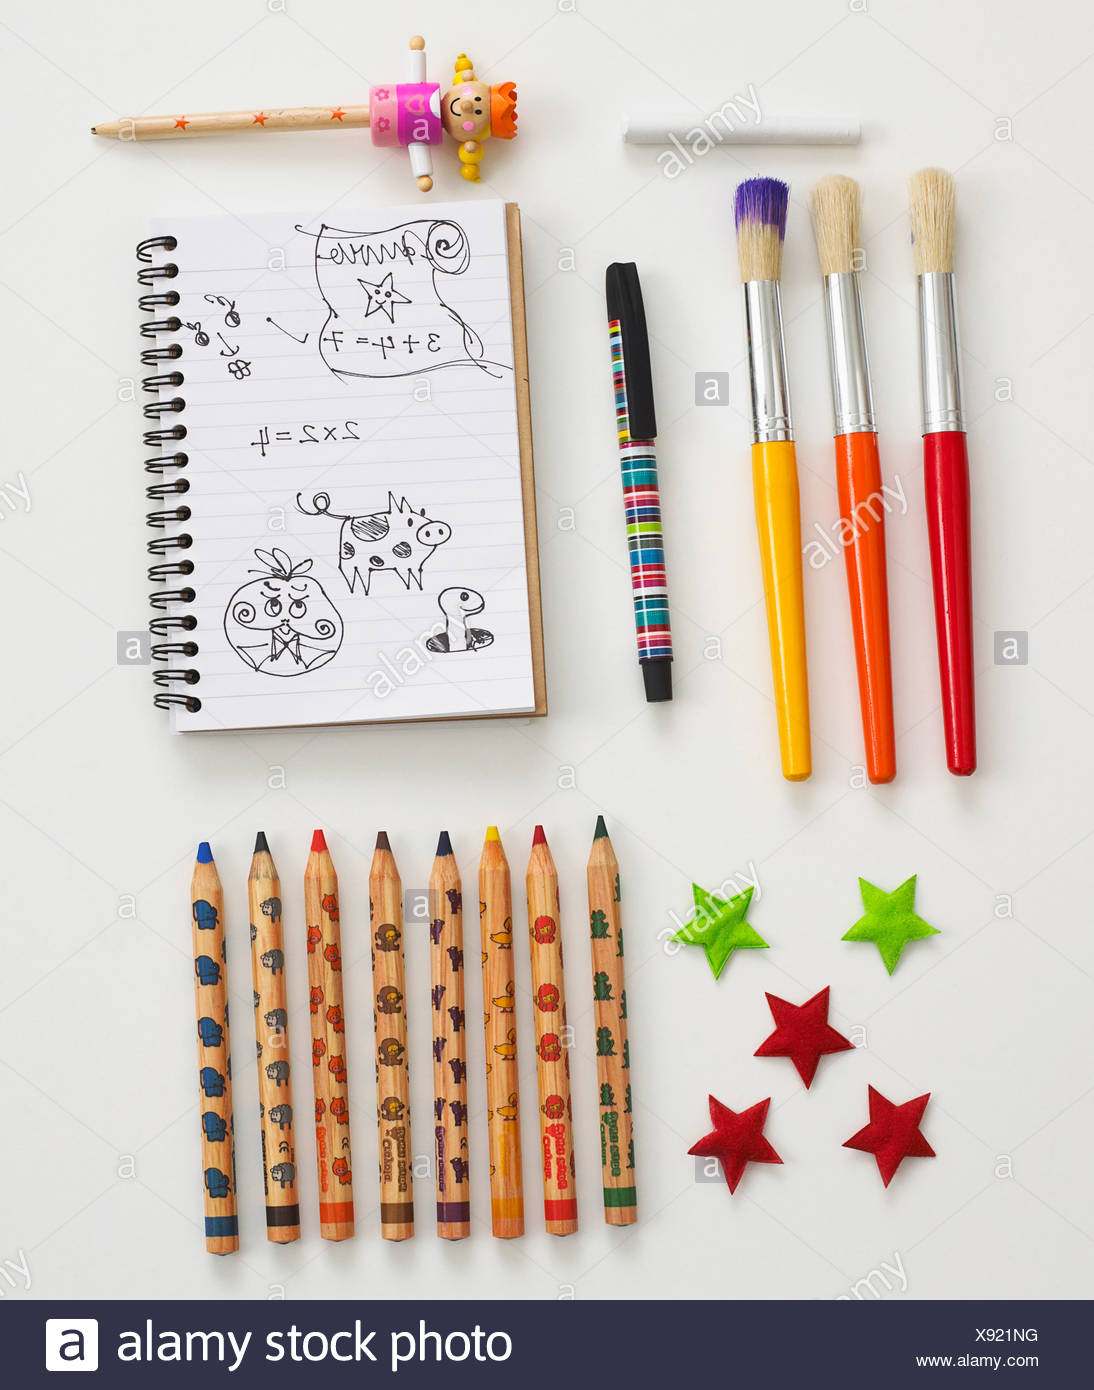 Assorted stationary including paintbrushes, pencils and notepad - Stock Image